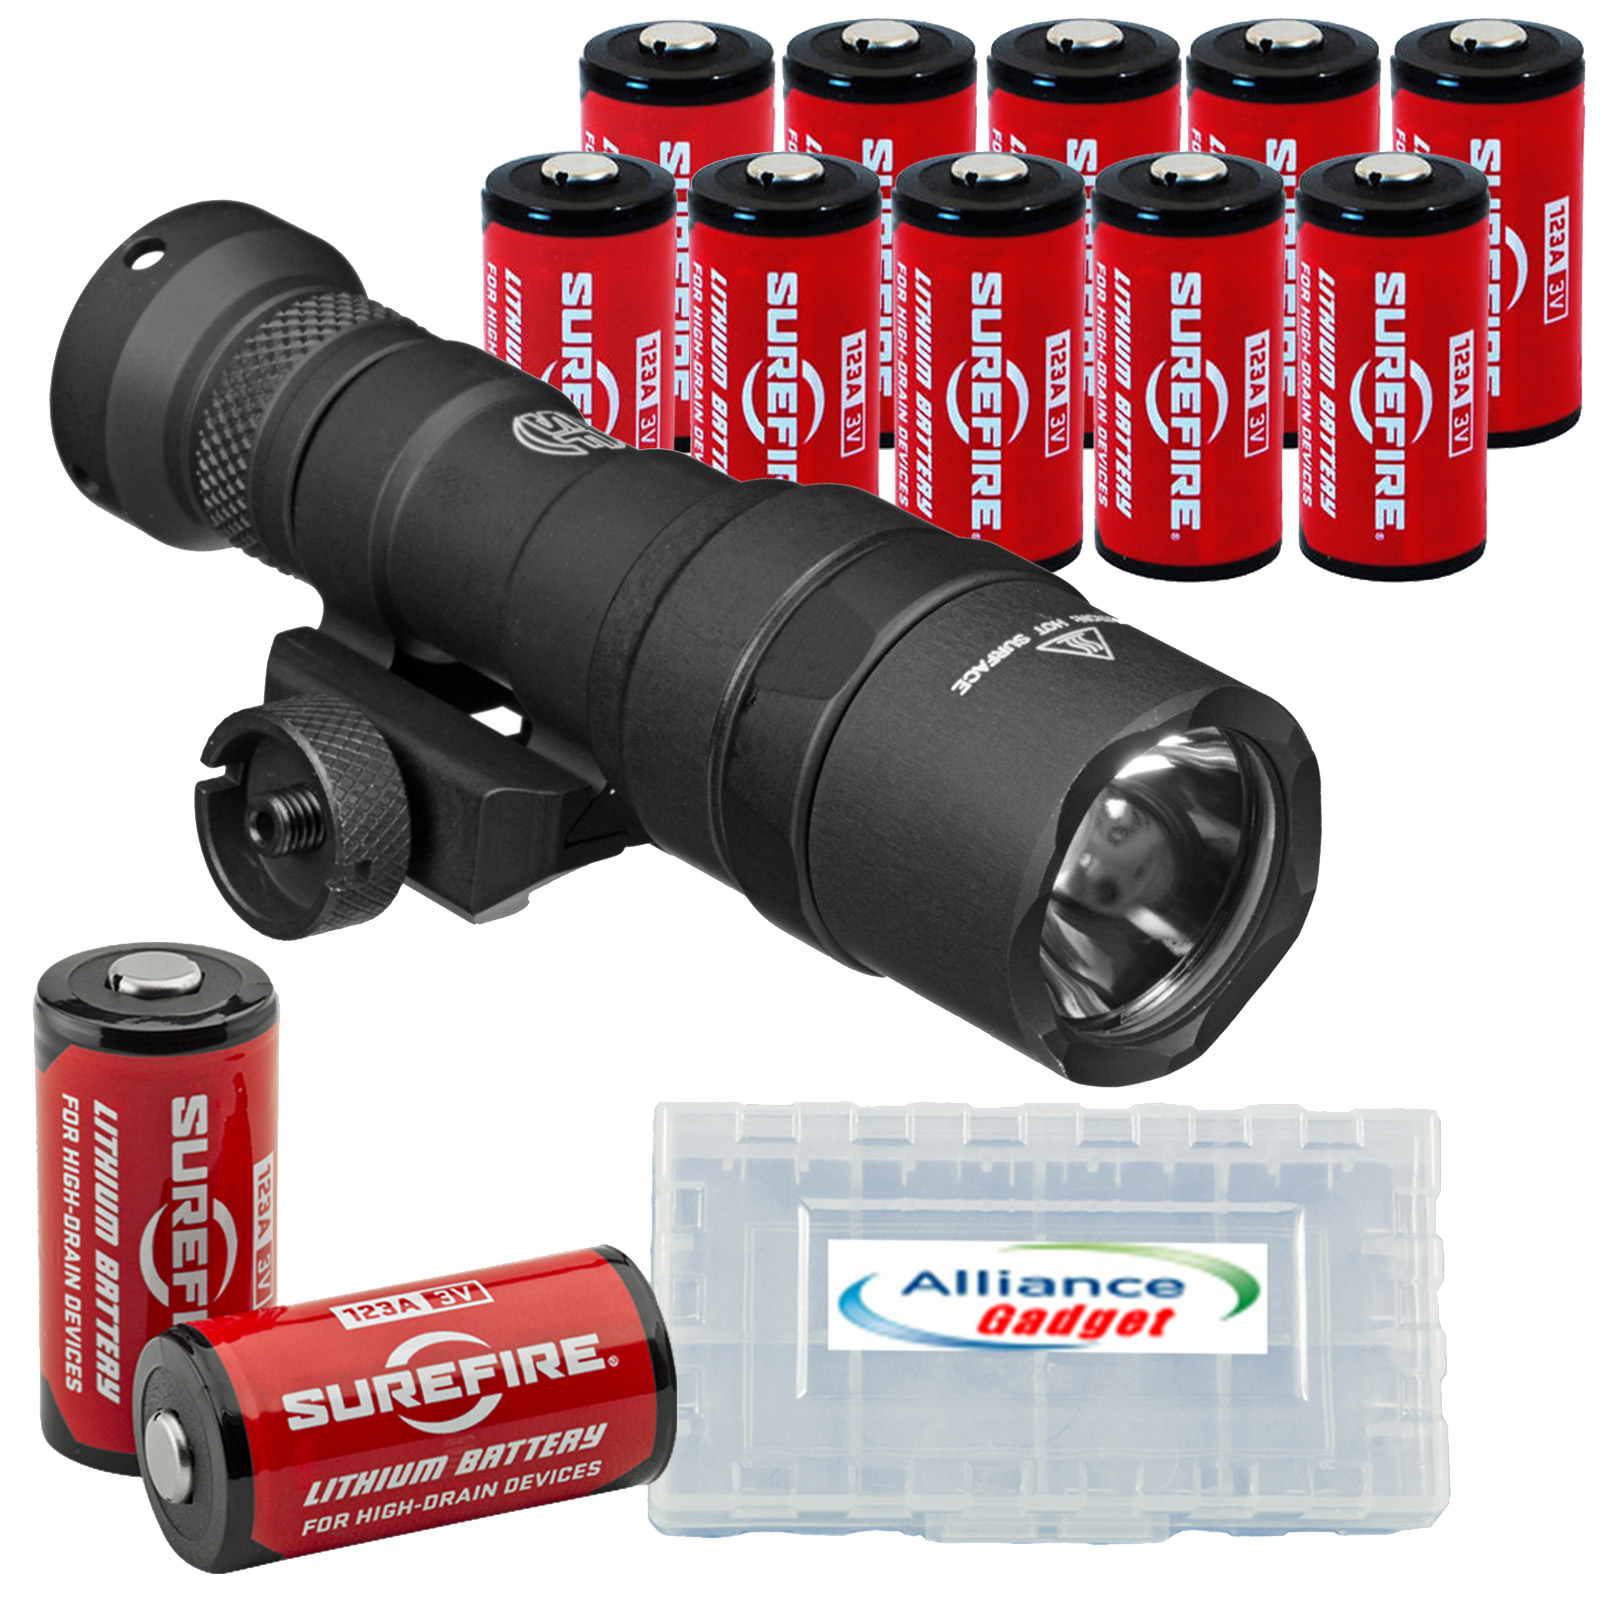 SureFire M300 Ultra Compact Mini Scout LED WeaponLight 300 Lumens with 12x Extra Surefire CR123A Batteries and 3 Battery Cases